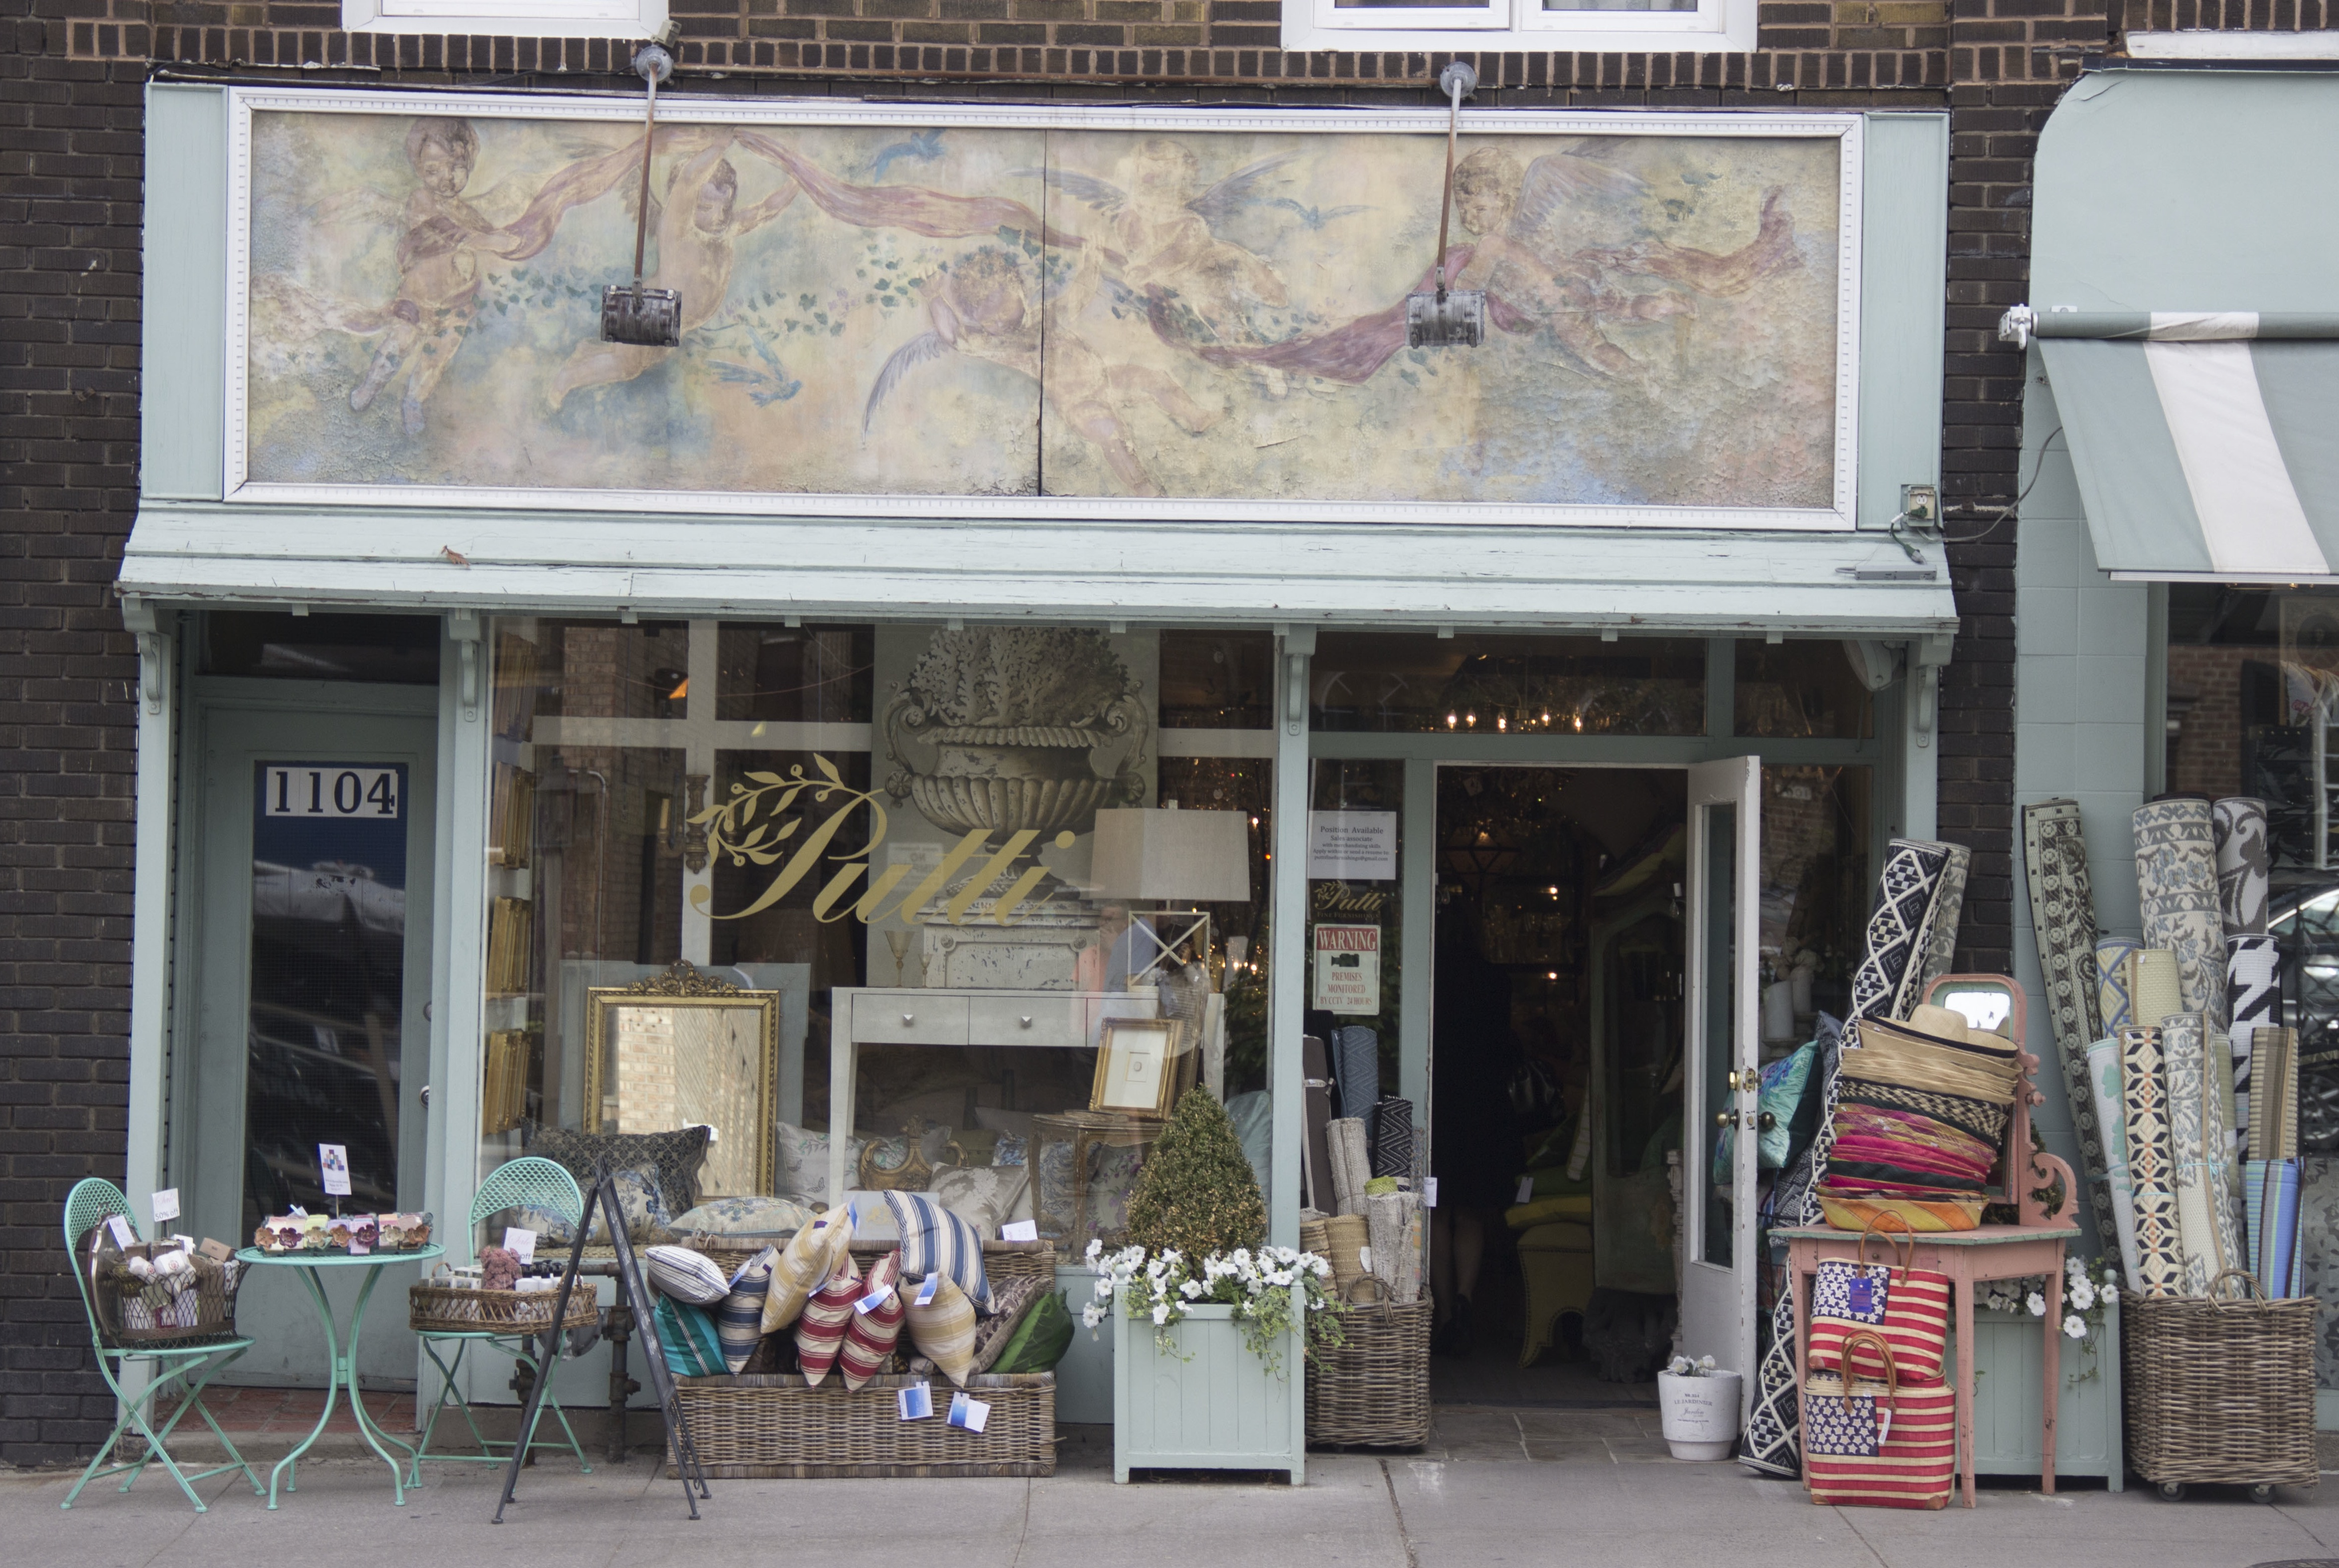 This Is A European Style Home Decor Boutique That Opened 19 Years Ago As An Antique Store In The Past Years This Place Became A Complete Lifestyle Shop